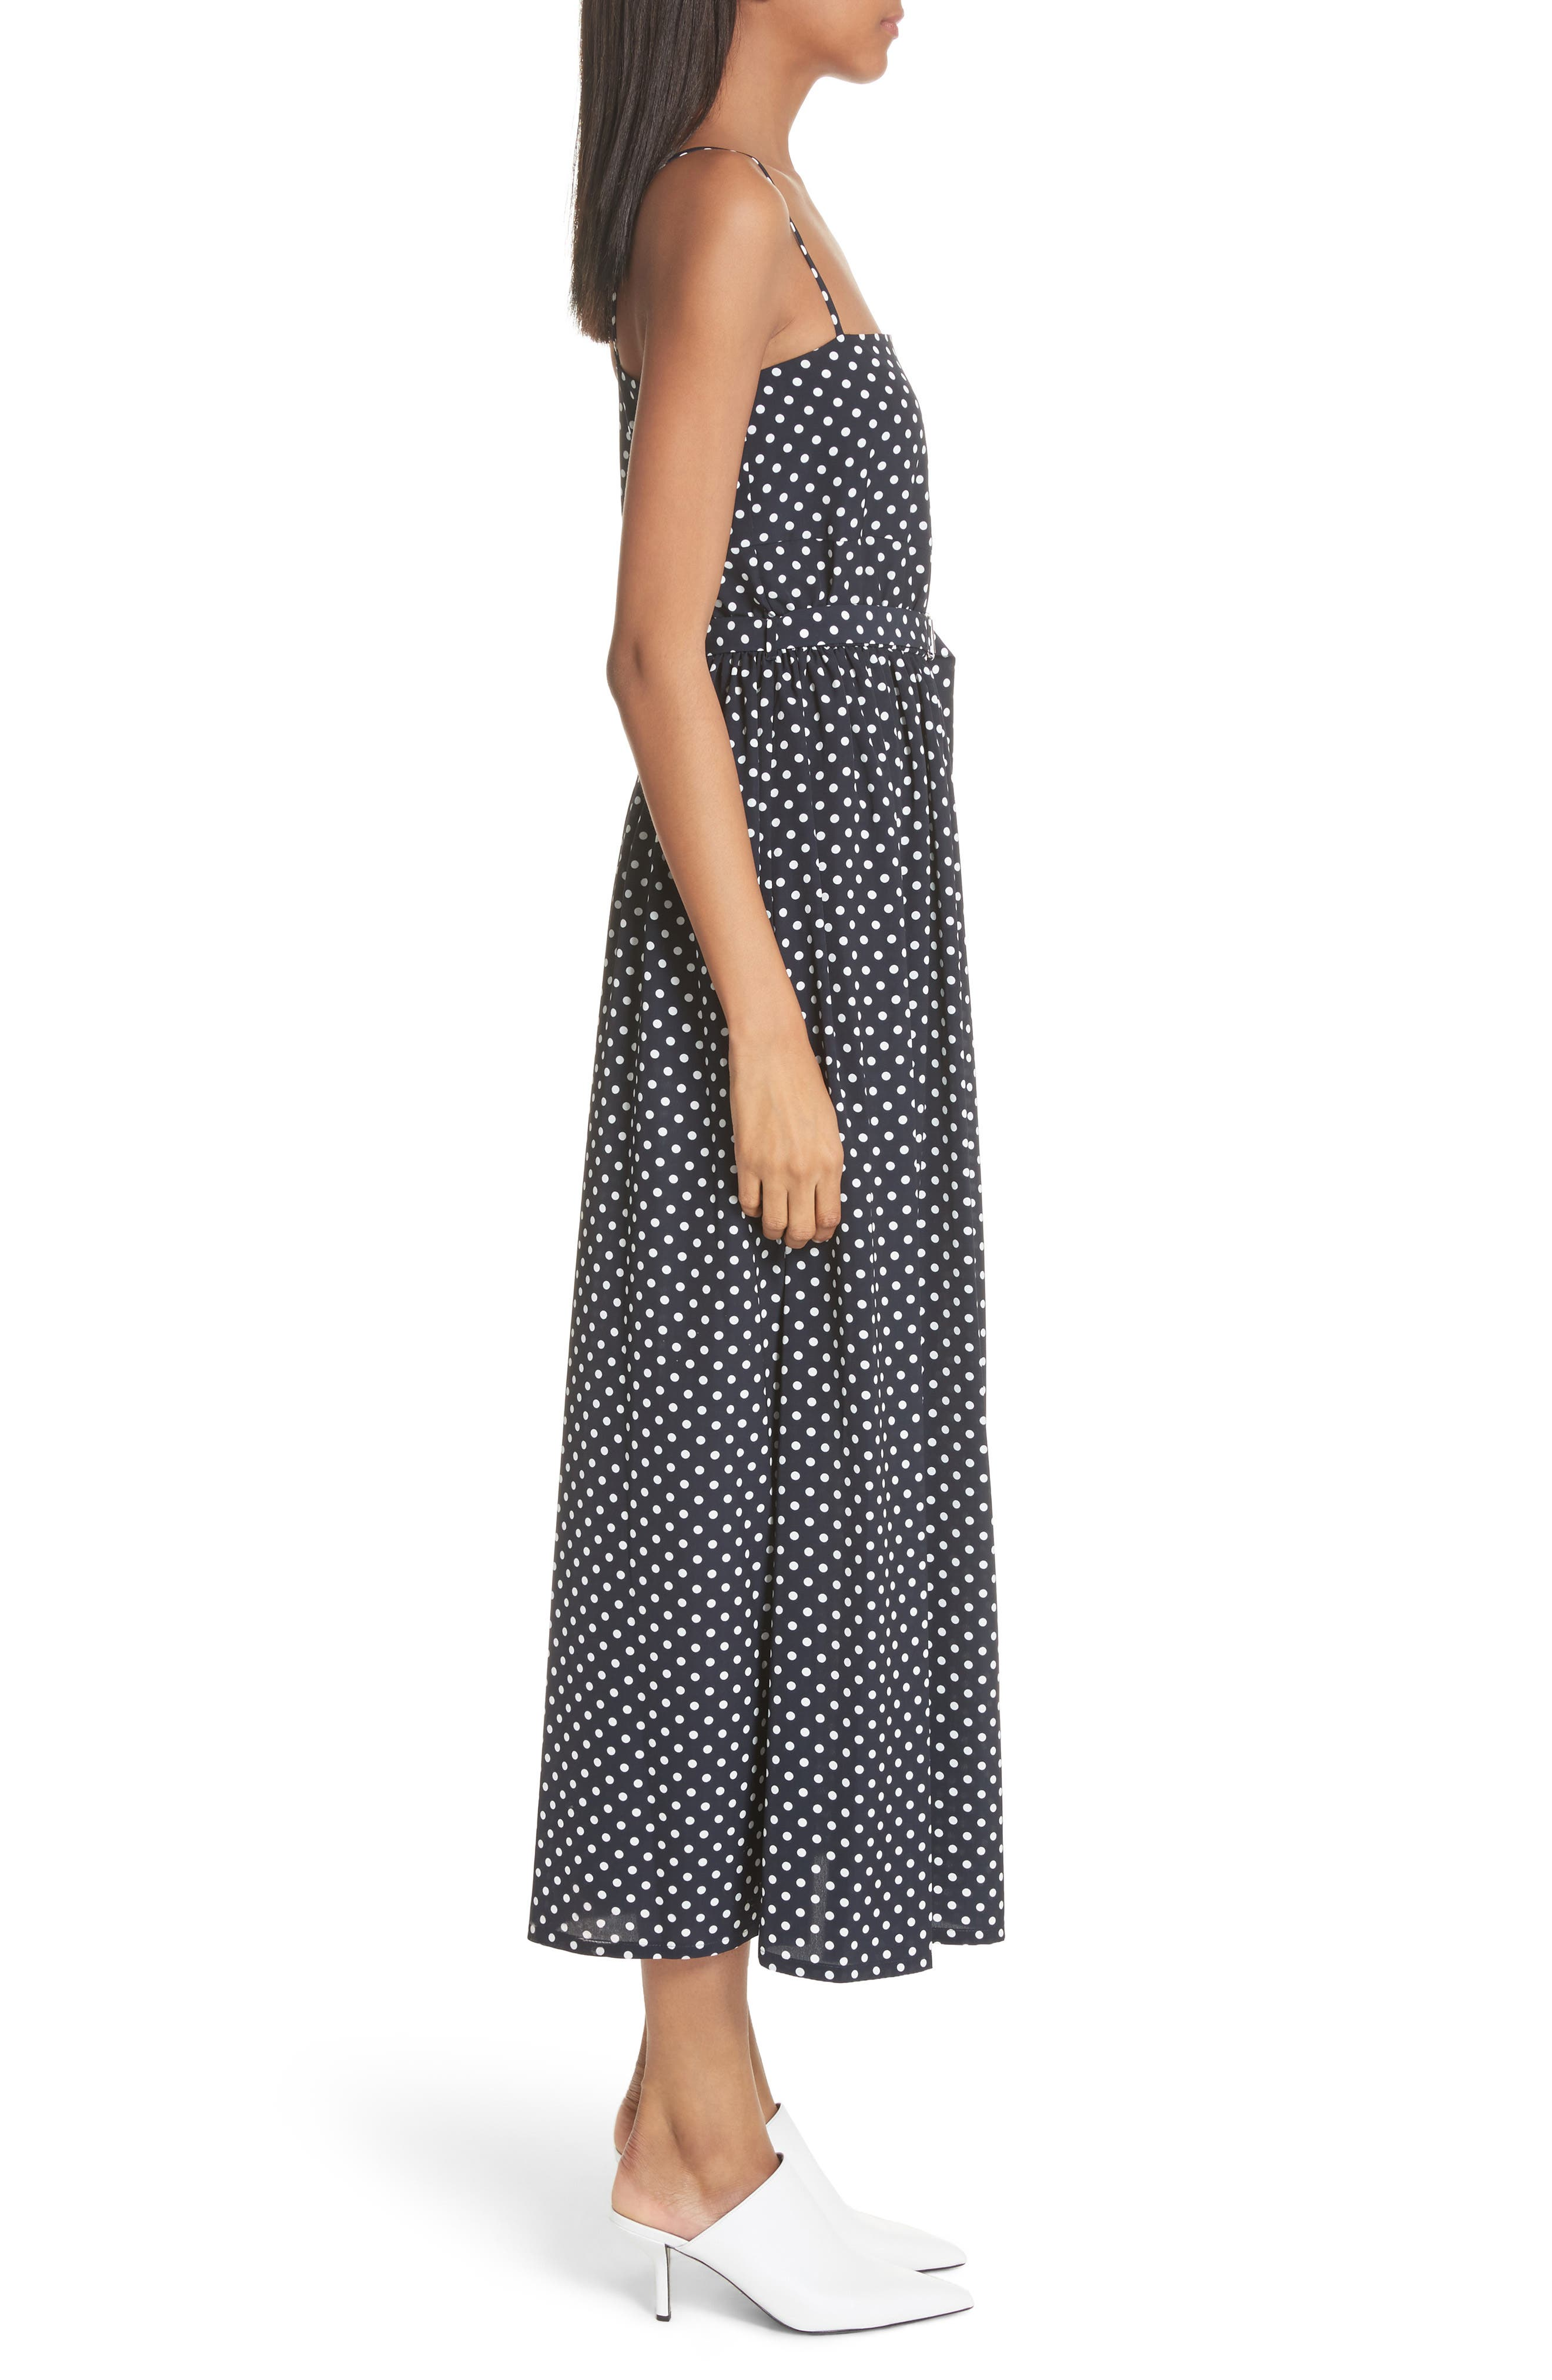 Polka Dot Midi Dress,                             Alternate thumbnail 4, color,                             Navy